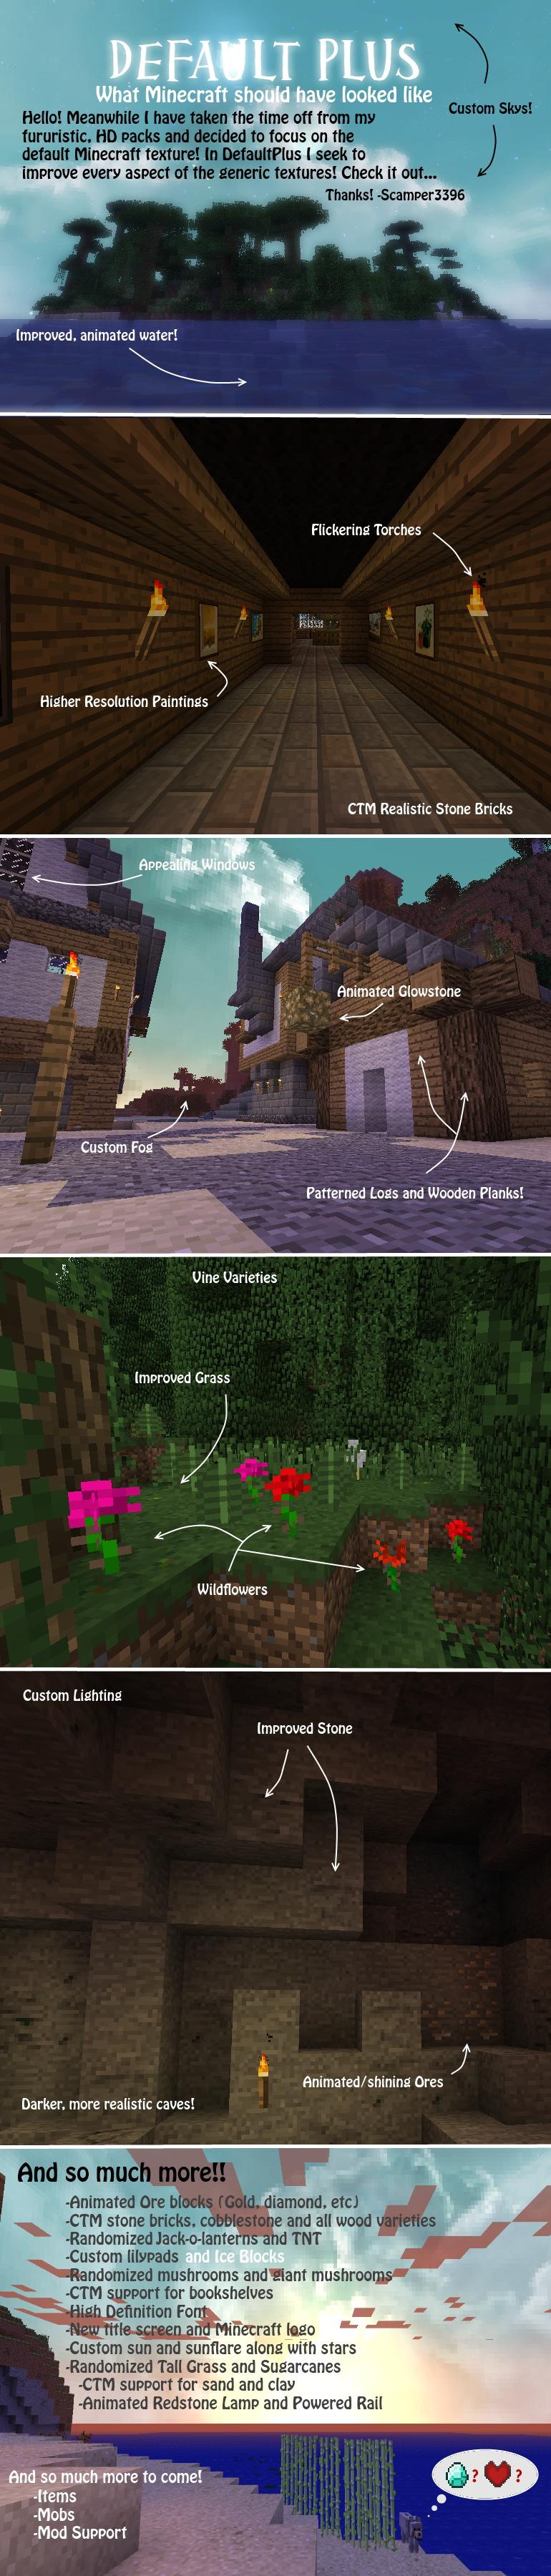 http://minecraft-forum.net/wp-content/uploads/2013/02/5e577__Defaultplus-texture-pack-1.jpg